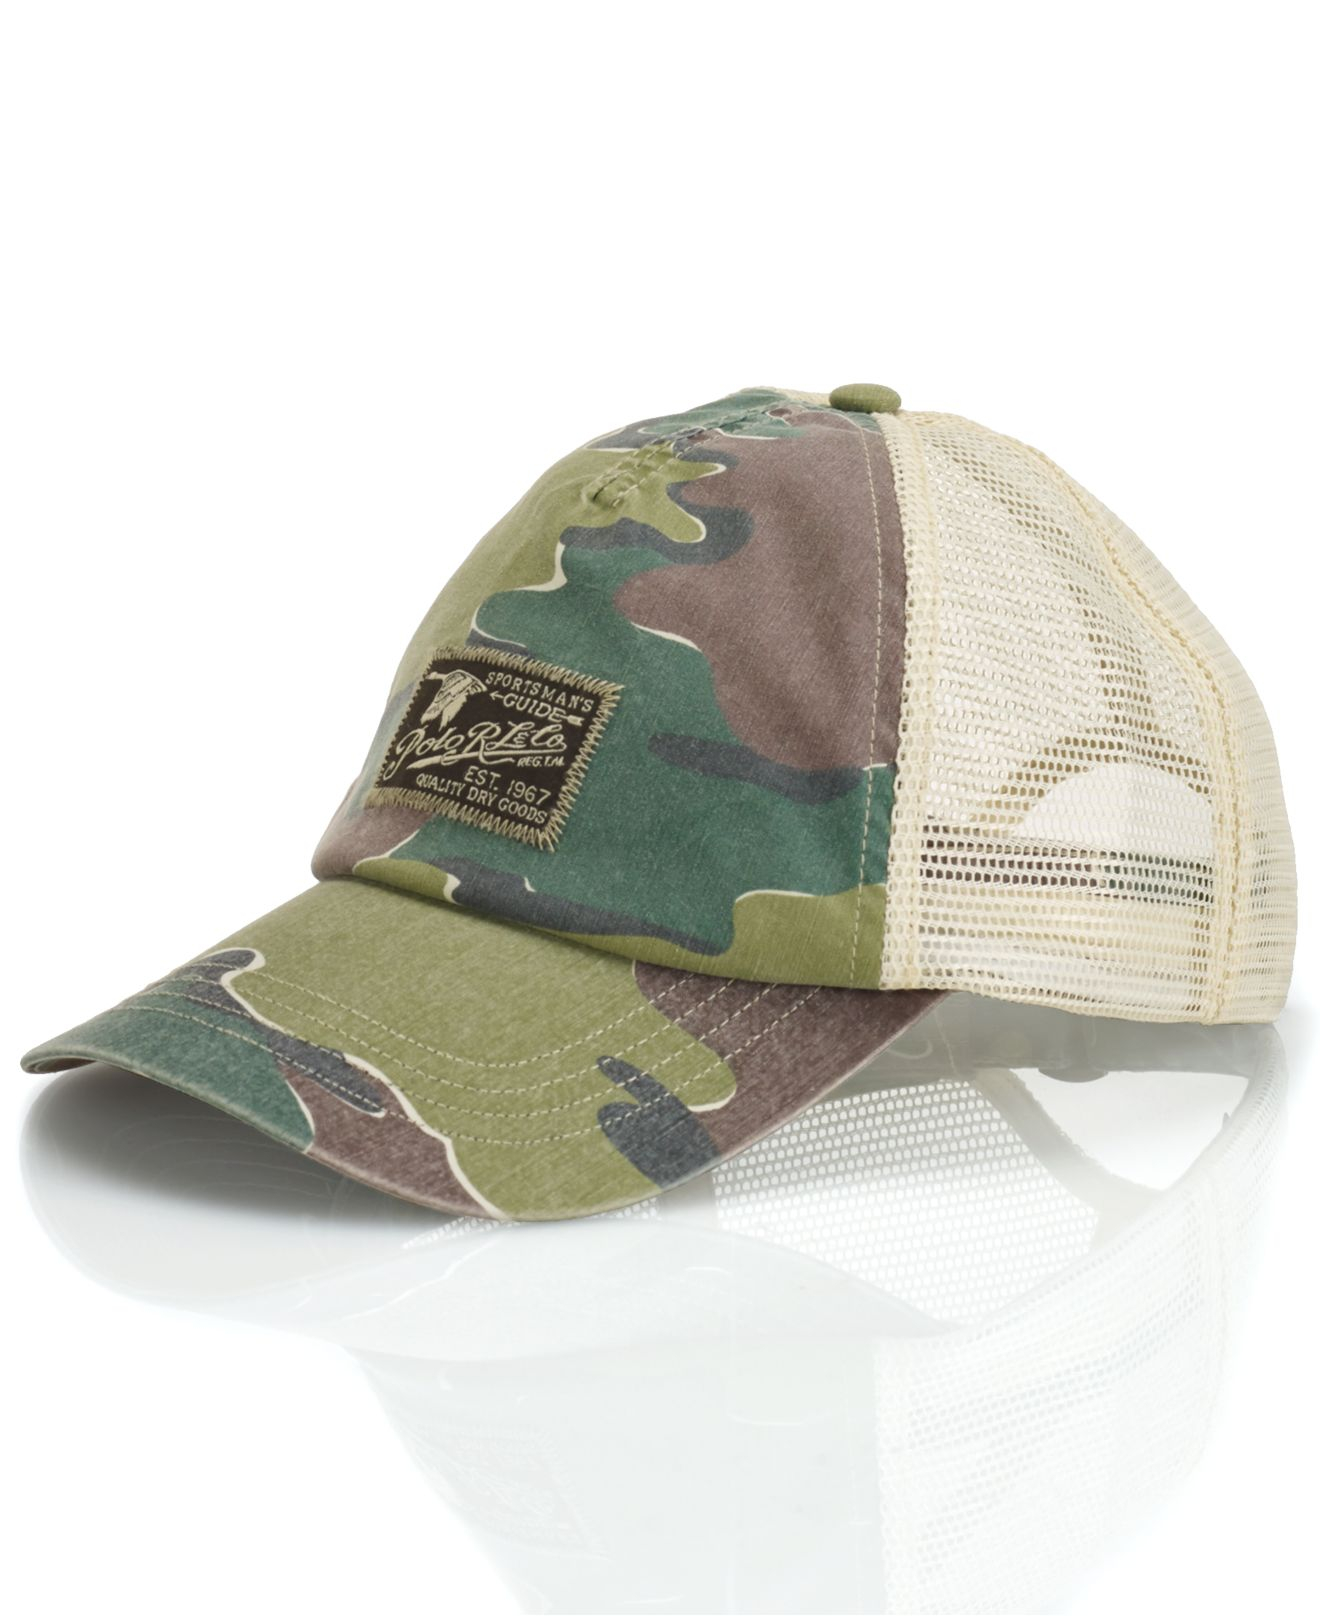 Lyst - Polo Ralph Lauren Camo Trucker Hat in Green for Men 9b70d886330